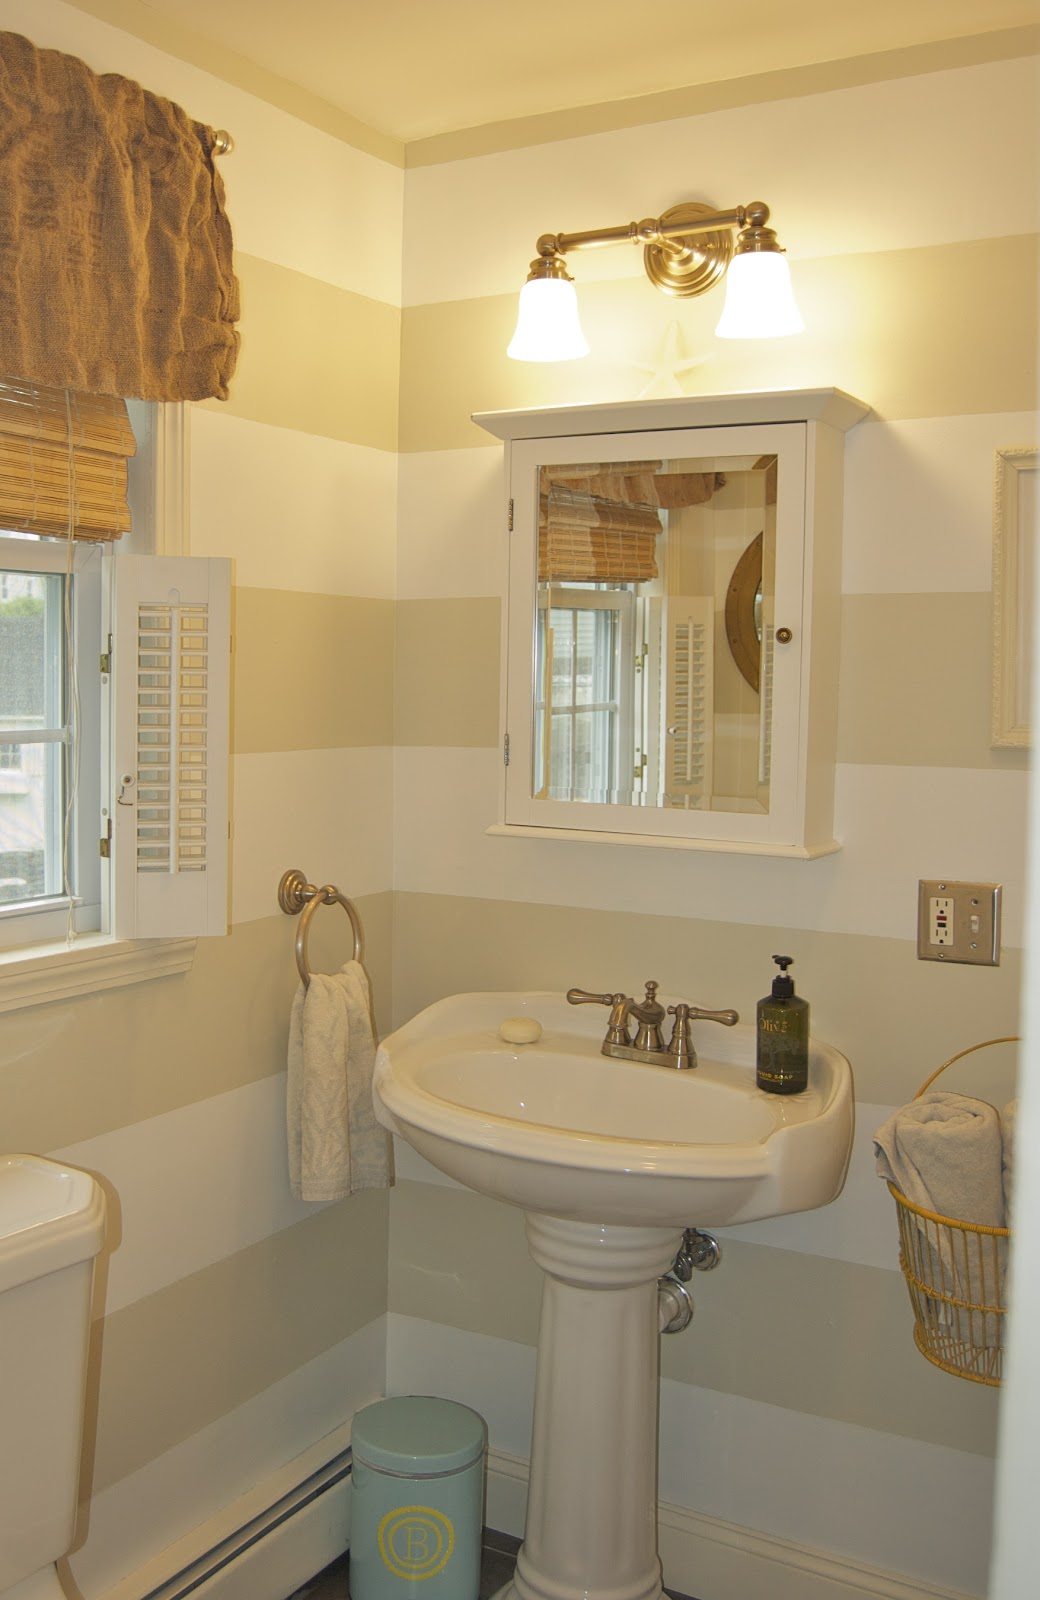 Bathroom Design Ideas With Stripes ~ Seaside shelter preppy striped bathroom